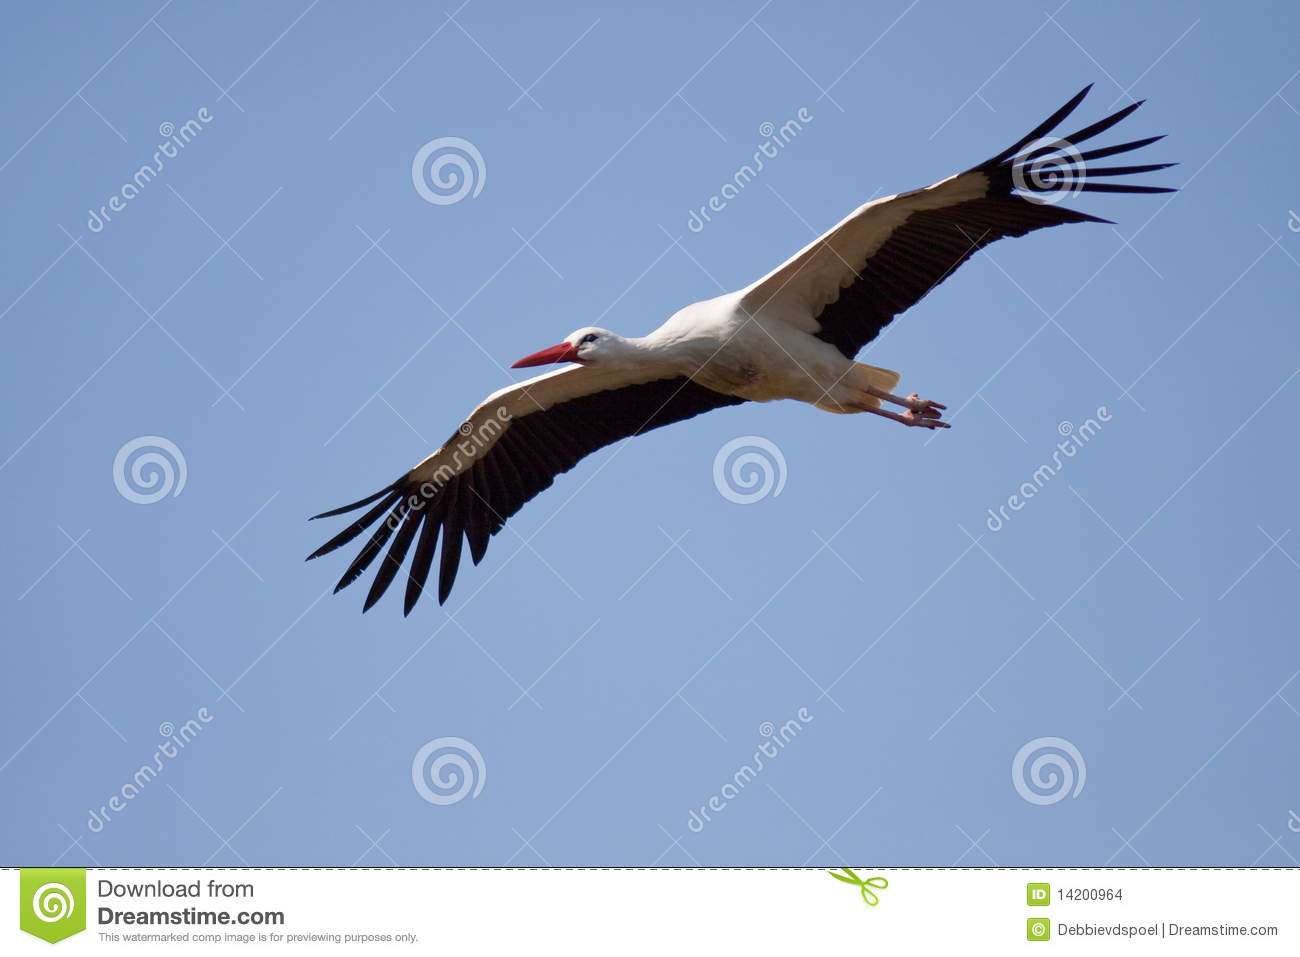 storch methode